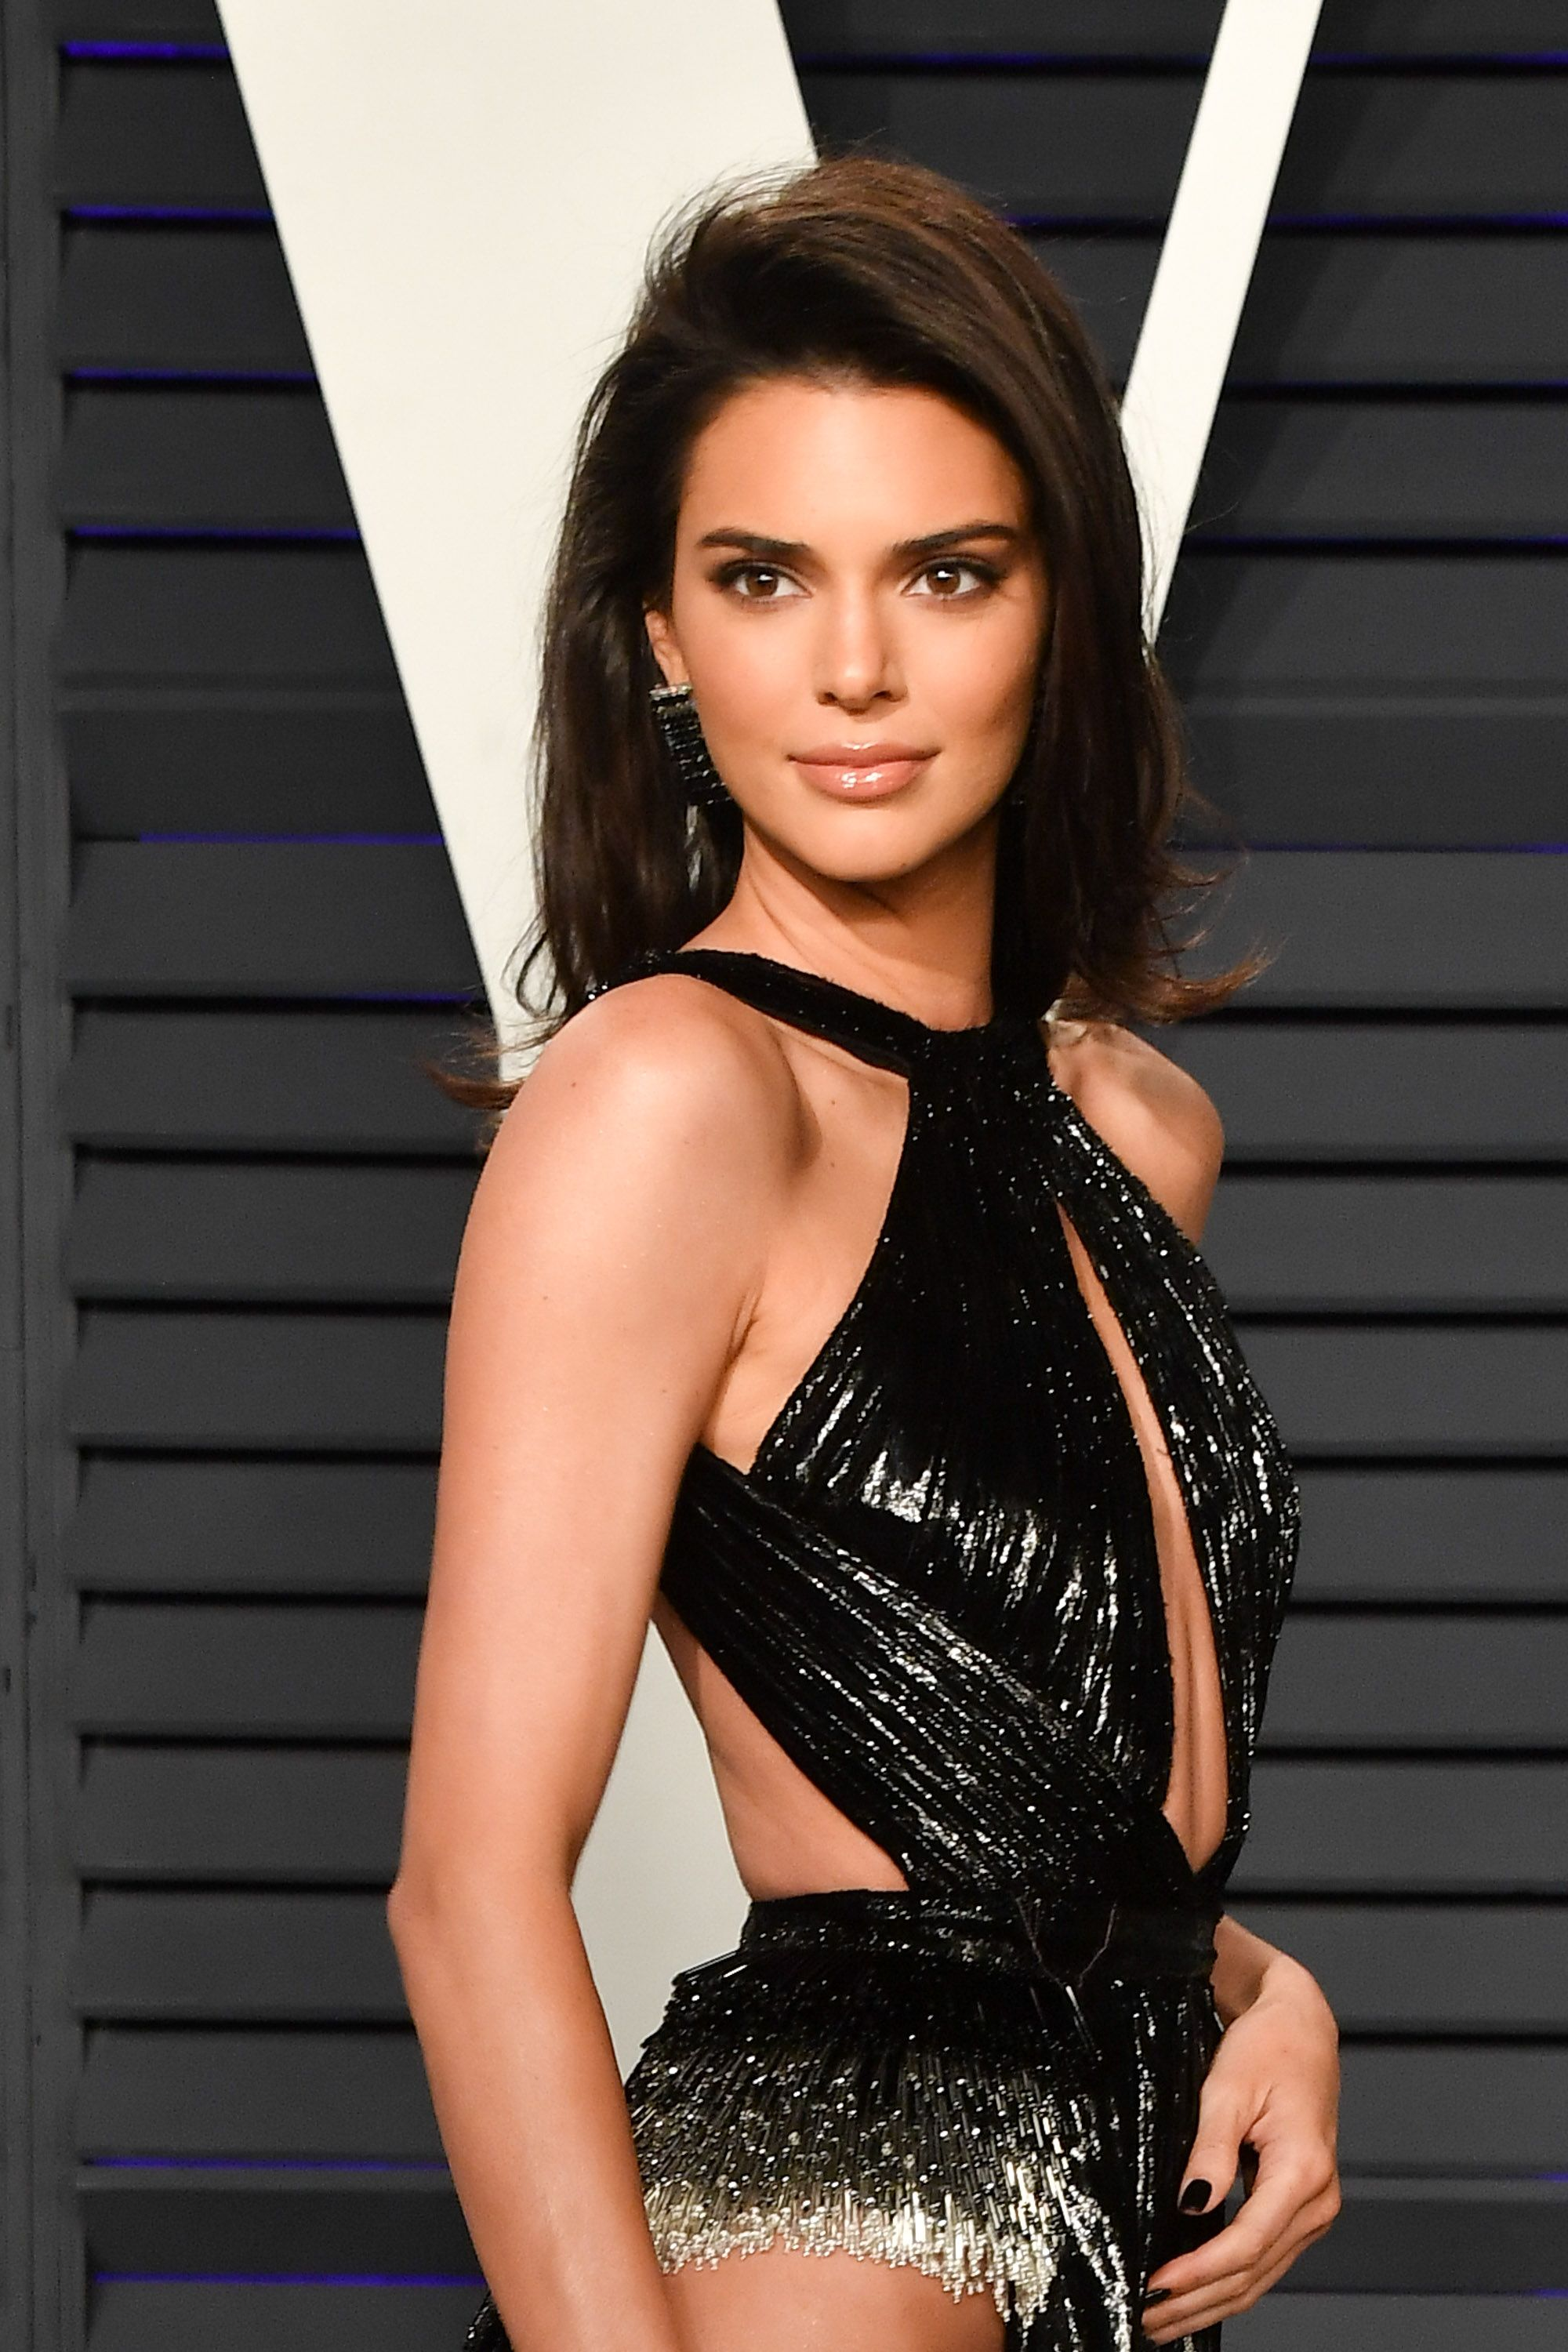 Kendall Jenner's personal trainer on how she sculpts her body